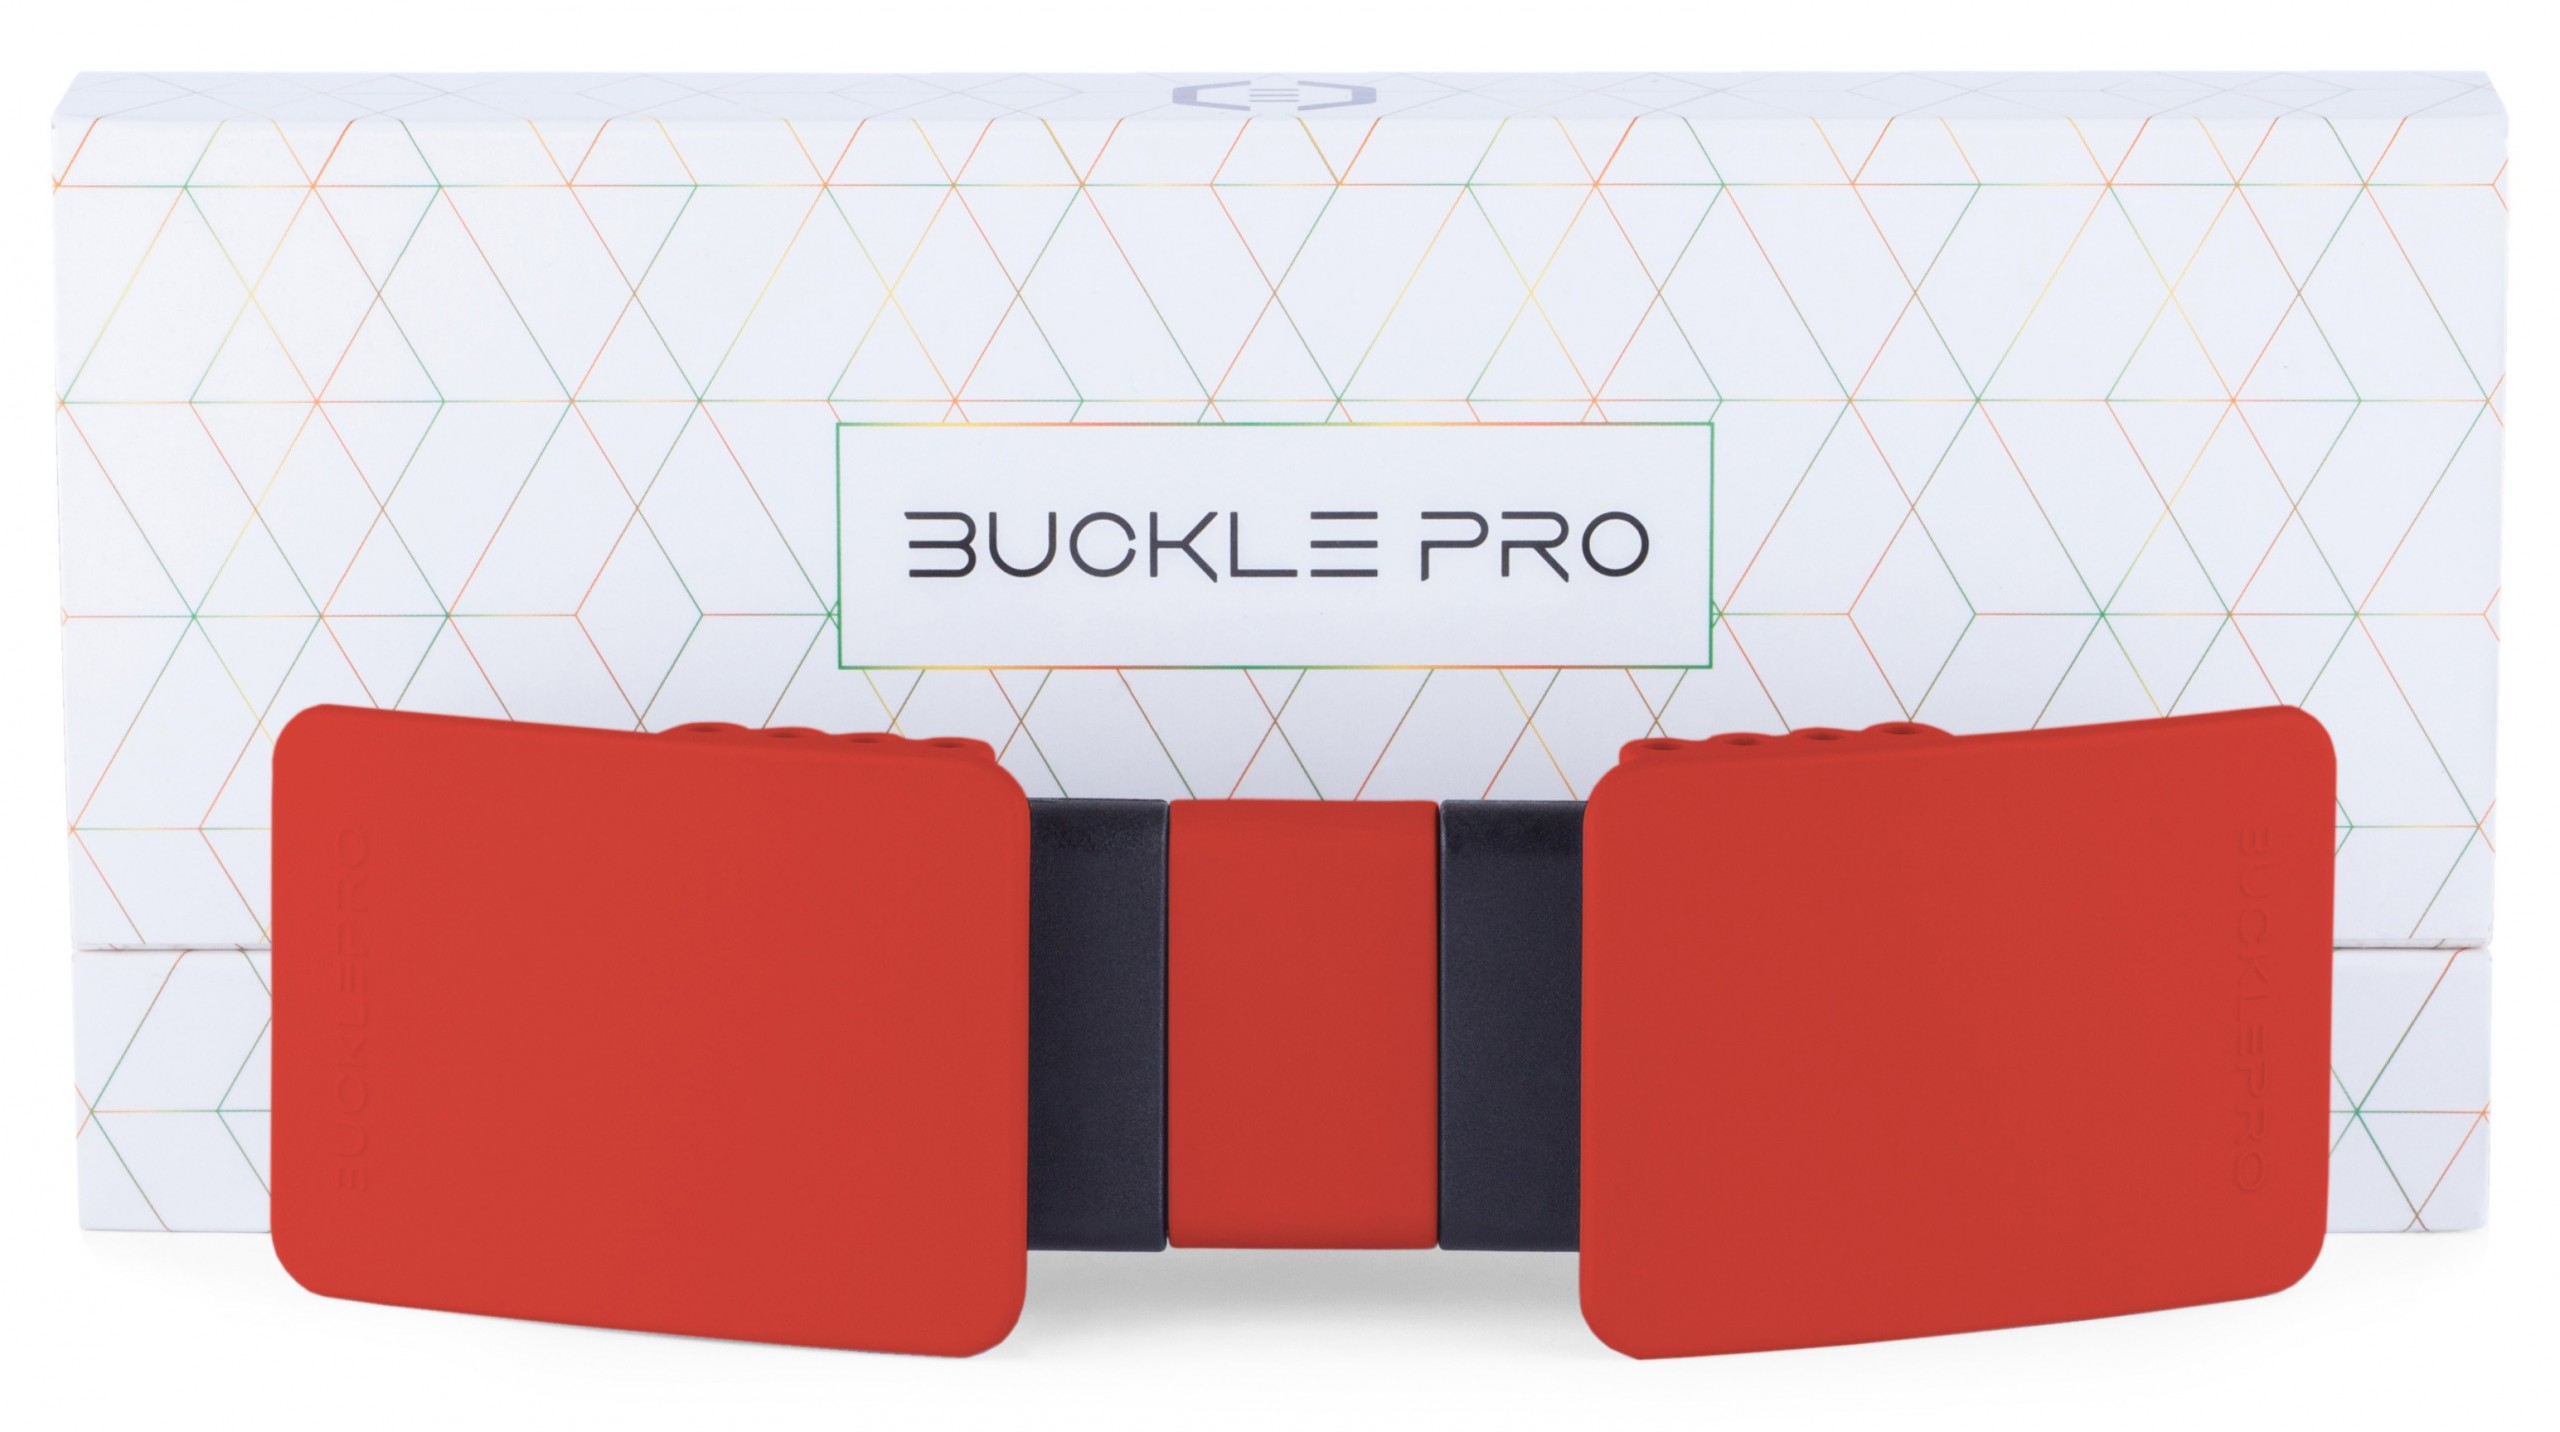 Buckle Pro – An innovative product to make your life easier